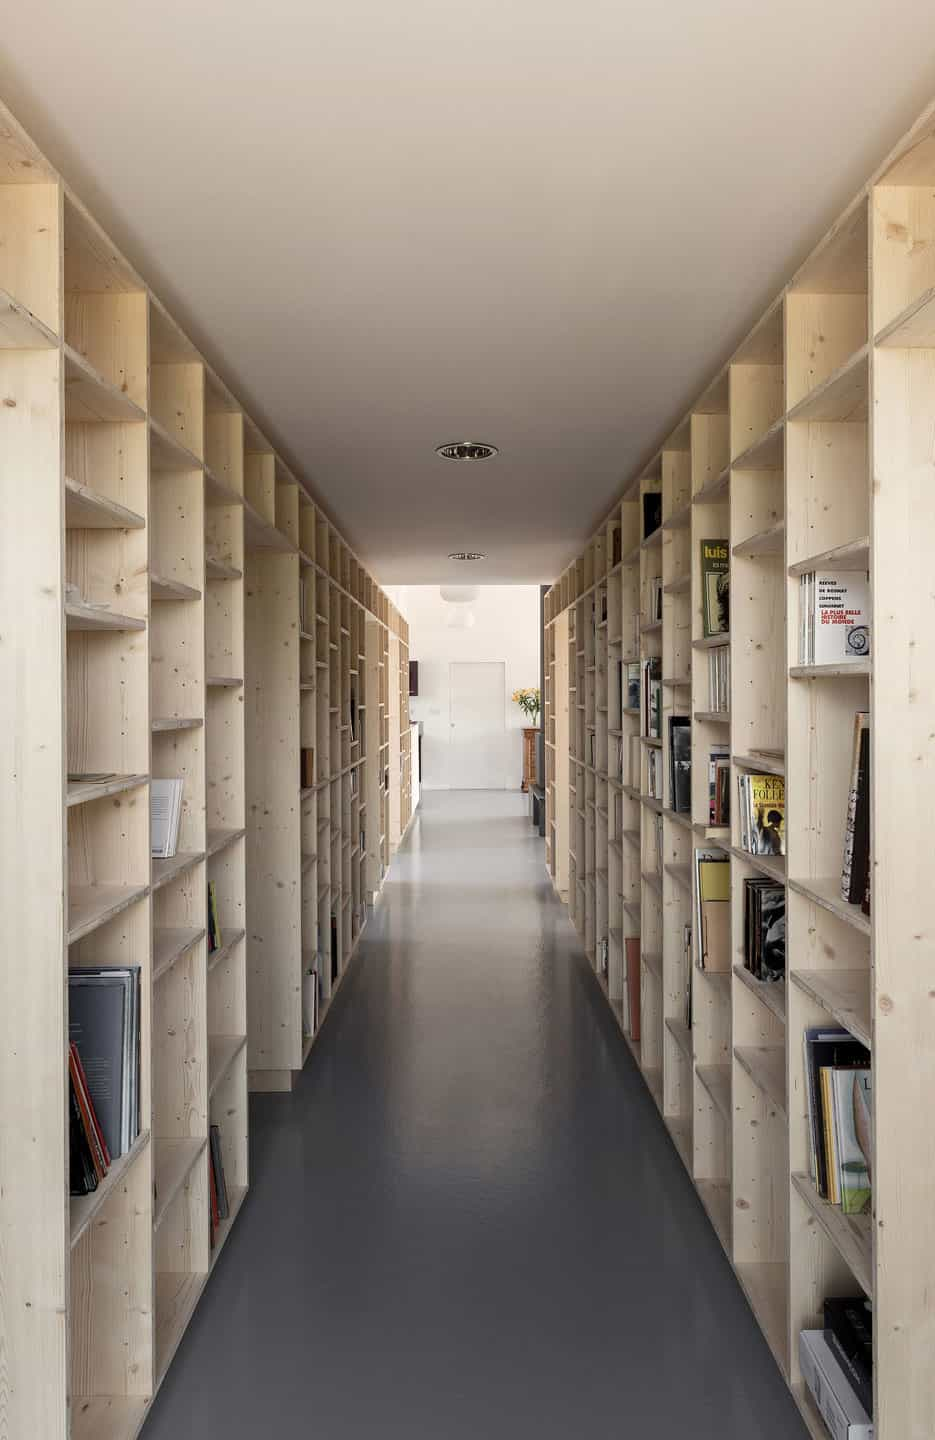 Country Home With Clean Lines Features Hallway Of Bookshelves